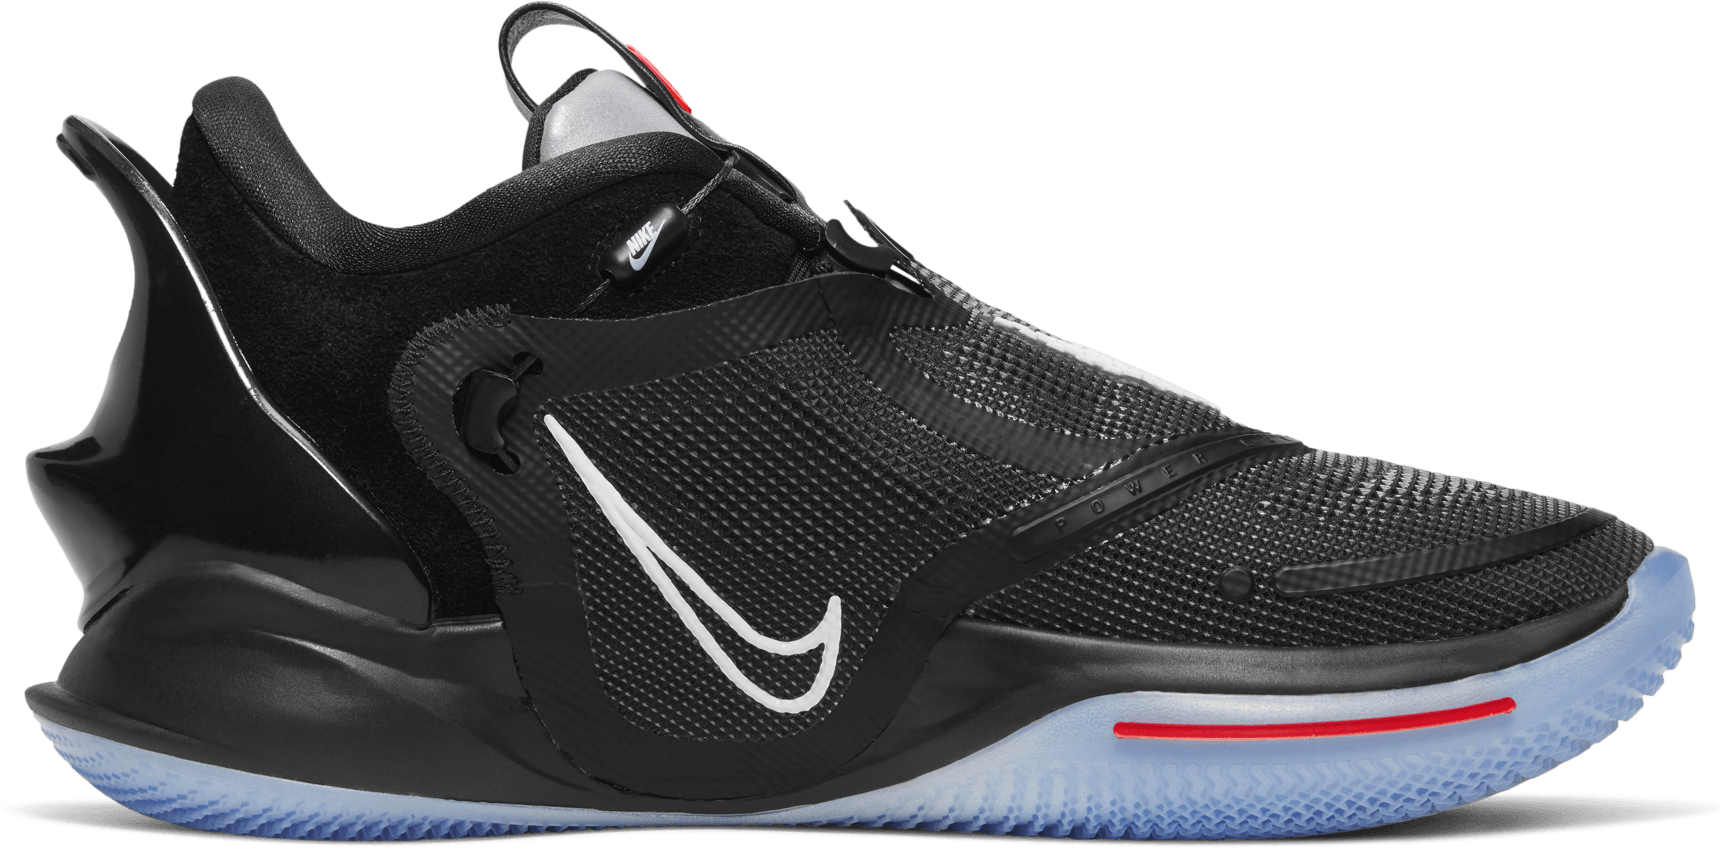 Nike Adapt Bb 2 0 Performance Review